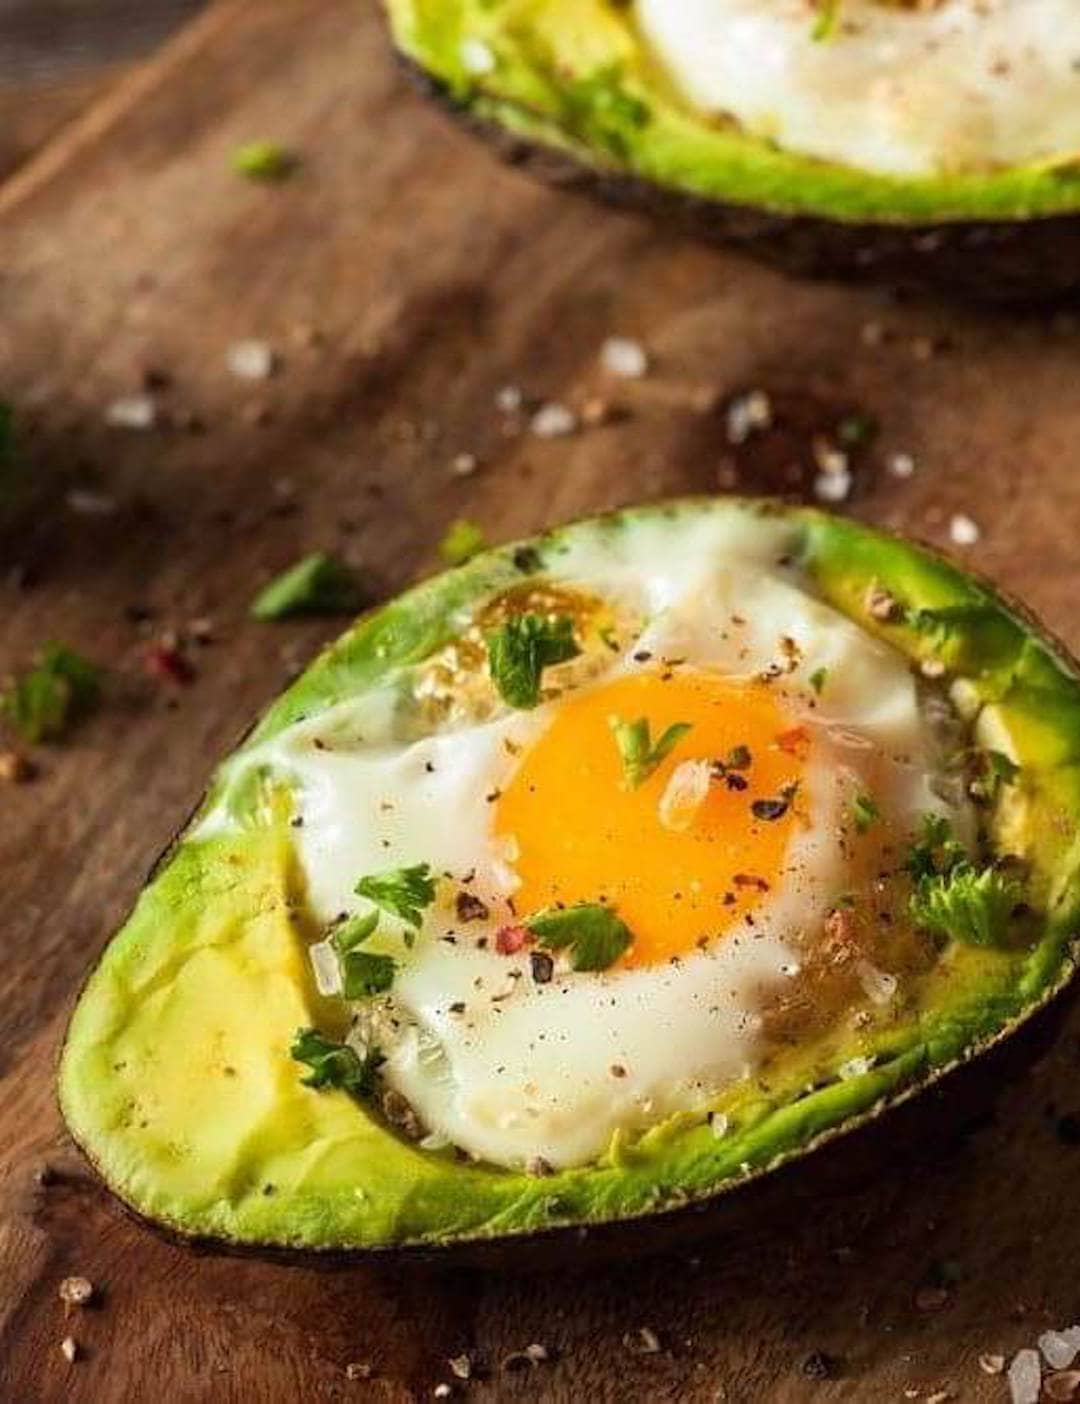 image of an air fryer avocado with egg on a wood platter